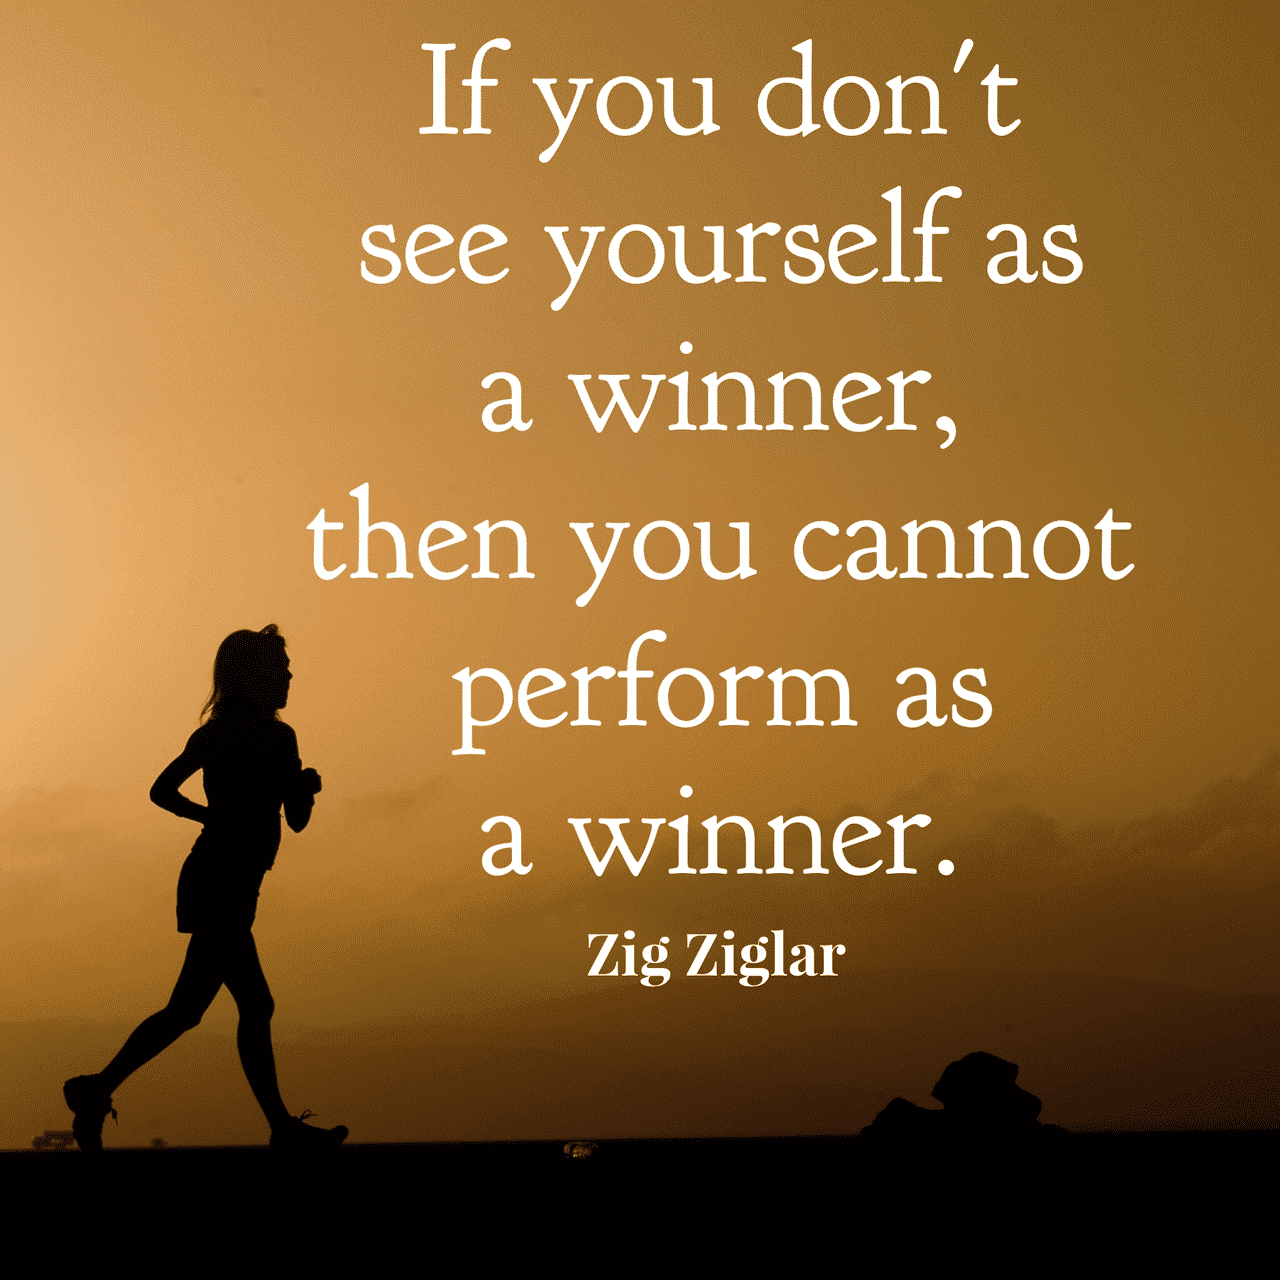 Quotes Zig Ziglar Stunning 25 Motivational Zig Ziglar Quotes